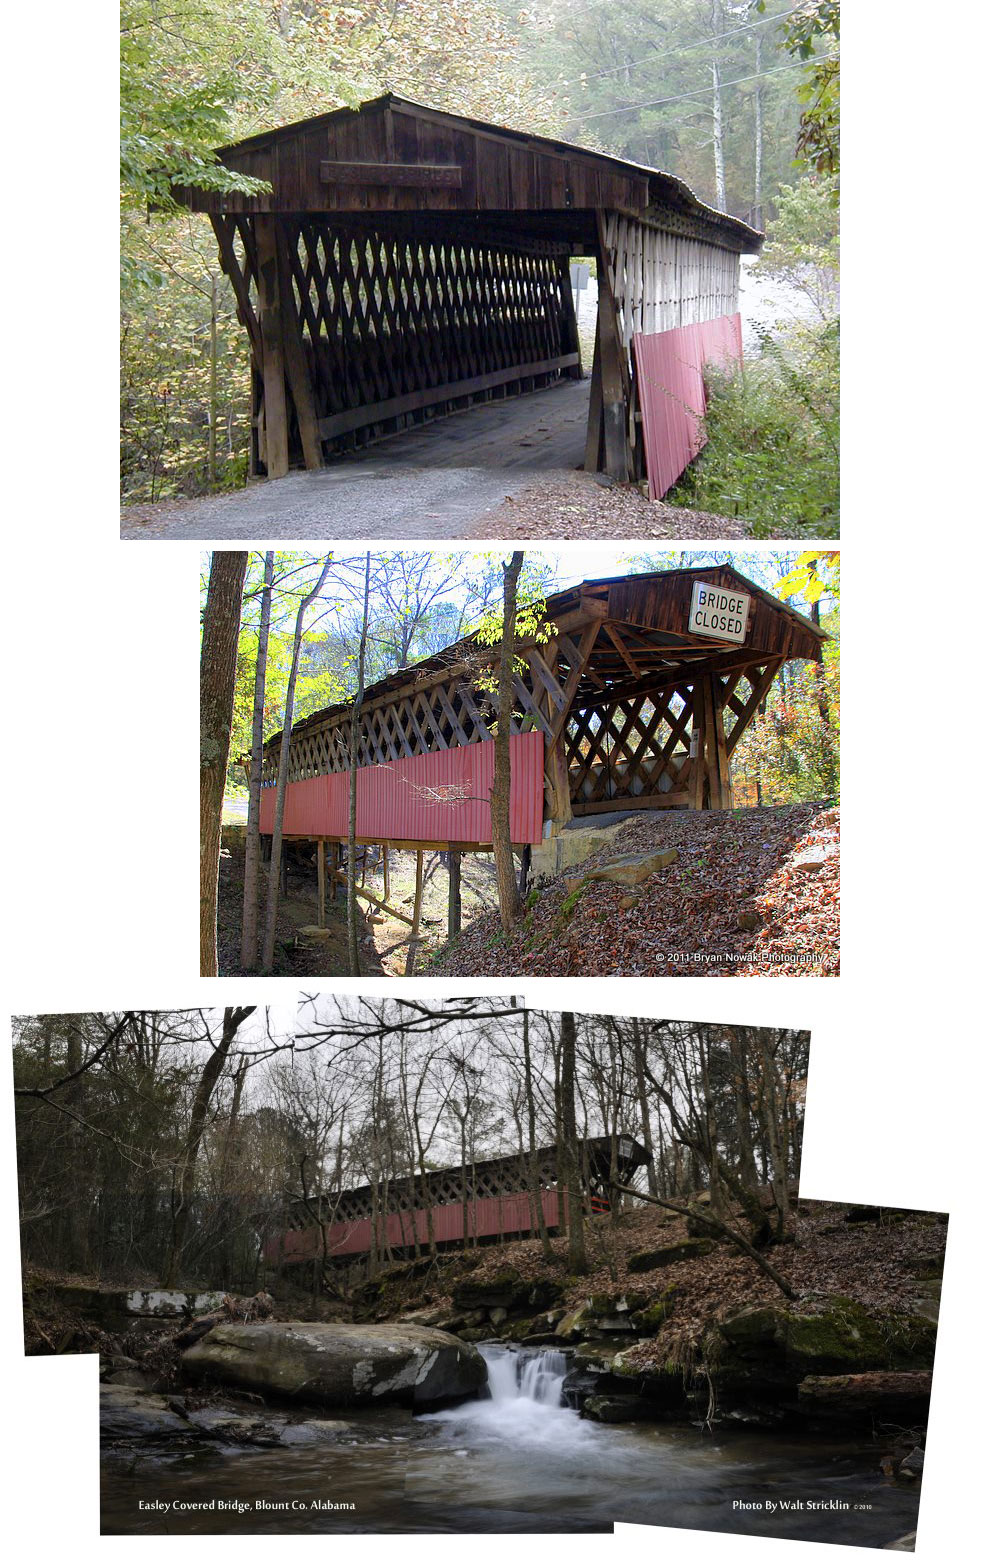 Old easley rosa bridge